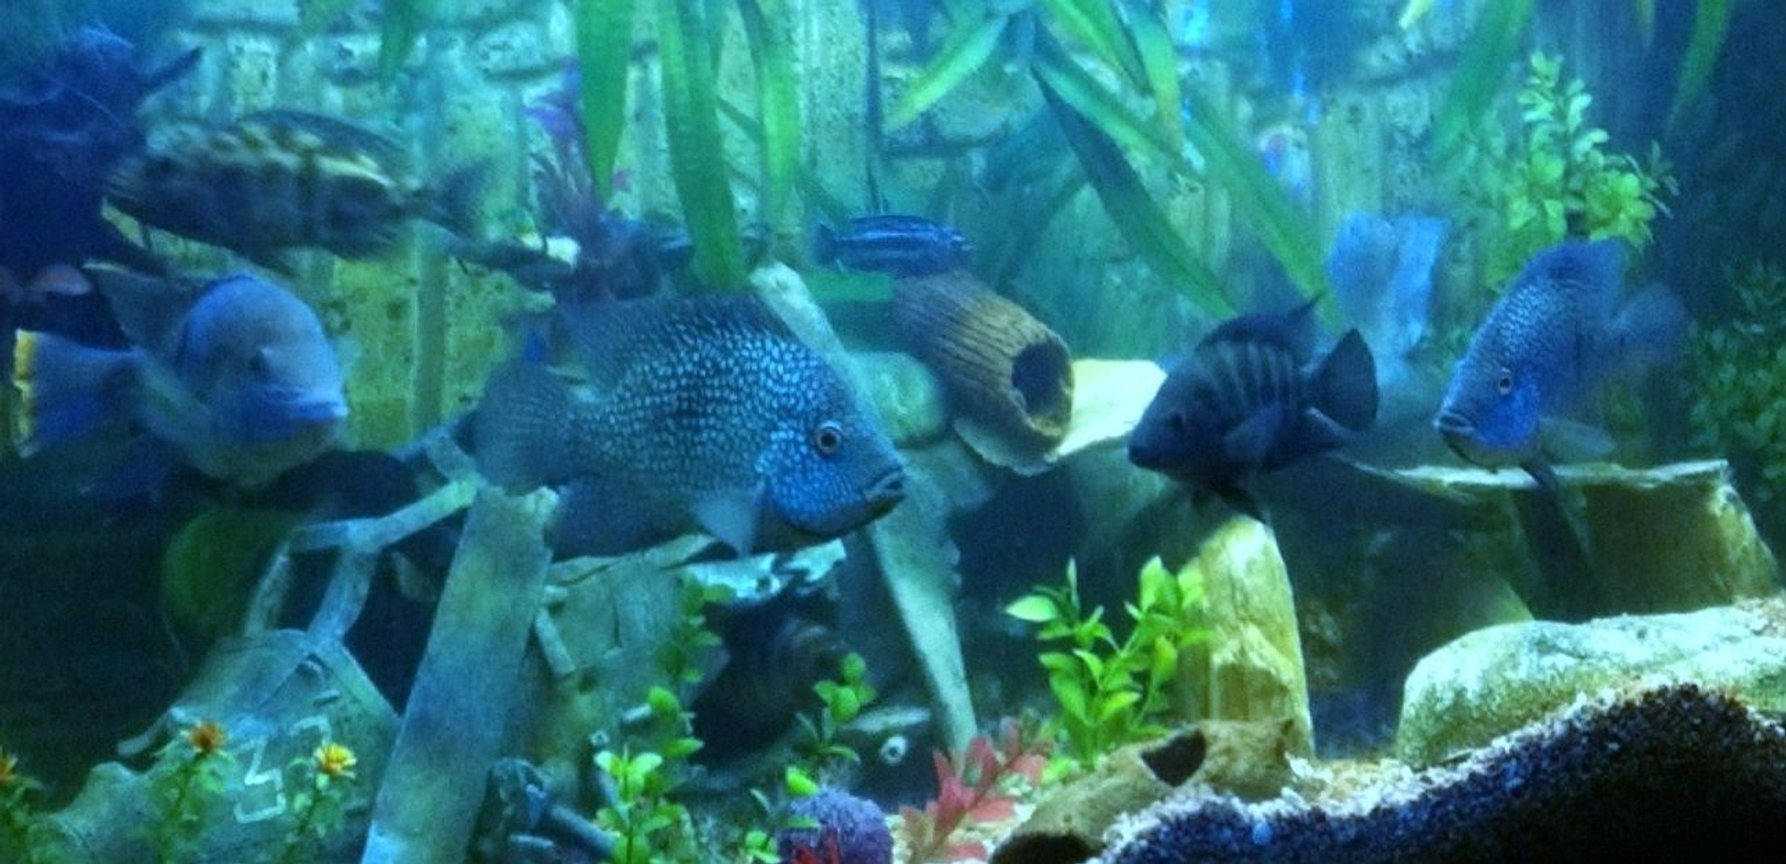 freshwater fish - herichthys carpinte - green texas cichlid stocking in 400 gallons tank - Texan Cichlids and a few others